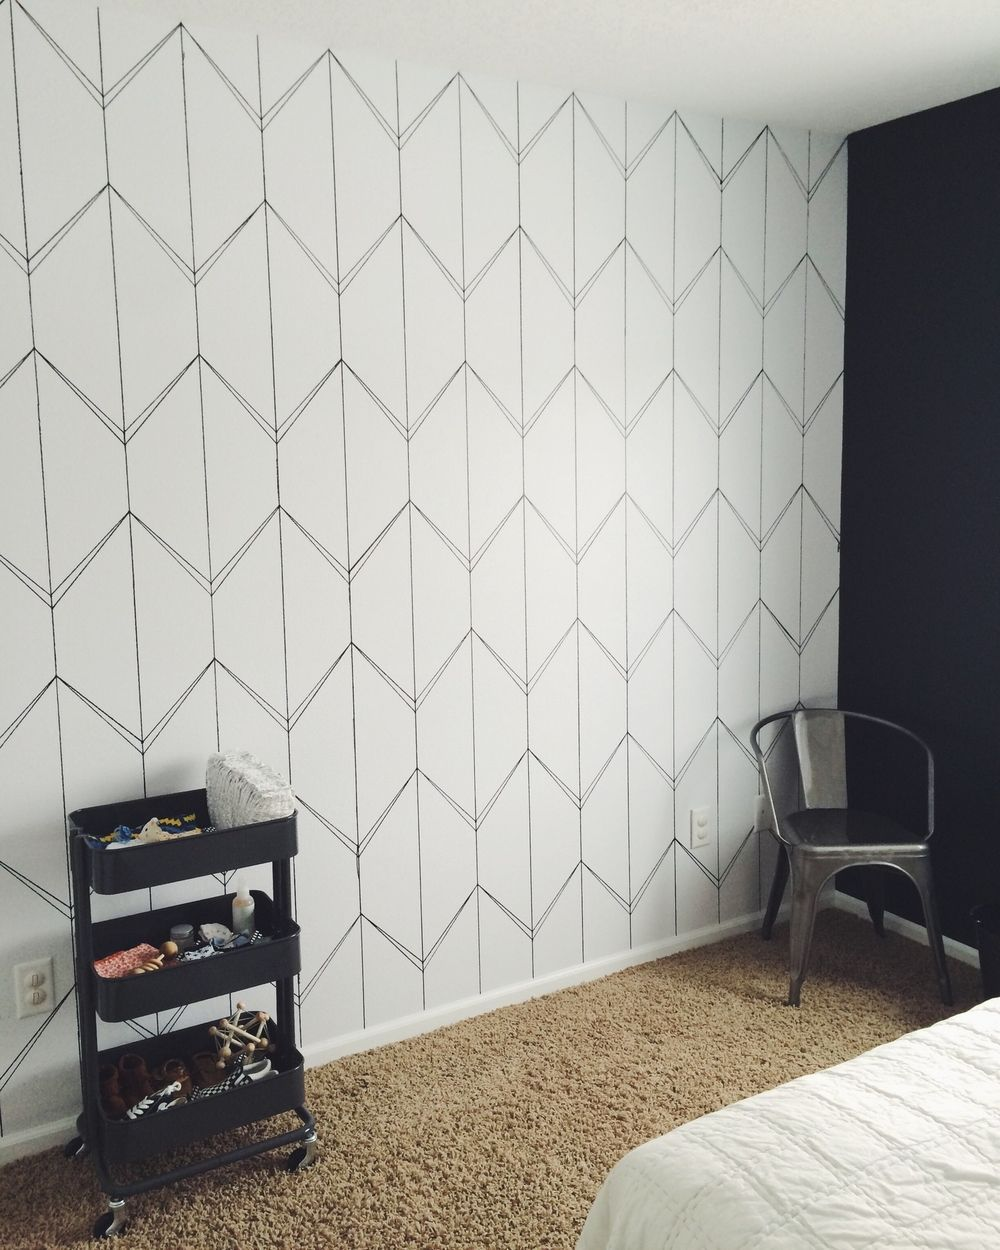 Diy Geometric Statement Wall Snappy Casual Accent Wall Bedroom Wallpaper Accent Wall Bathroom Wallpaper Accent Wall